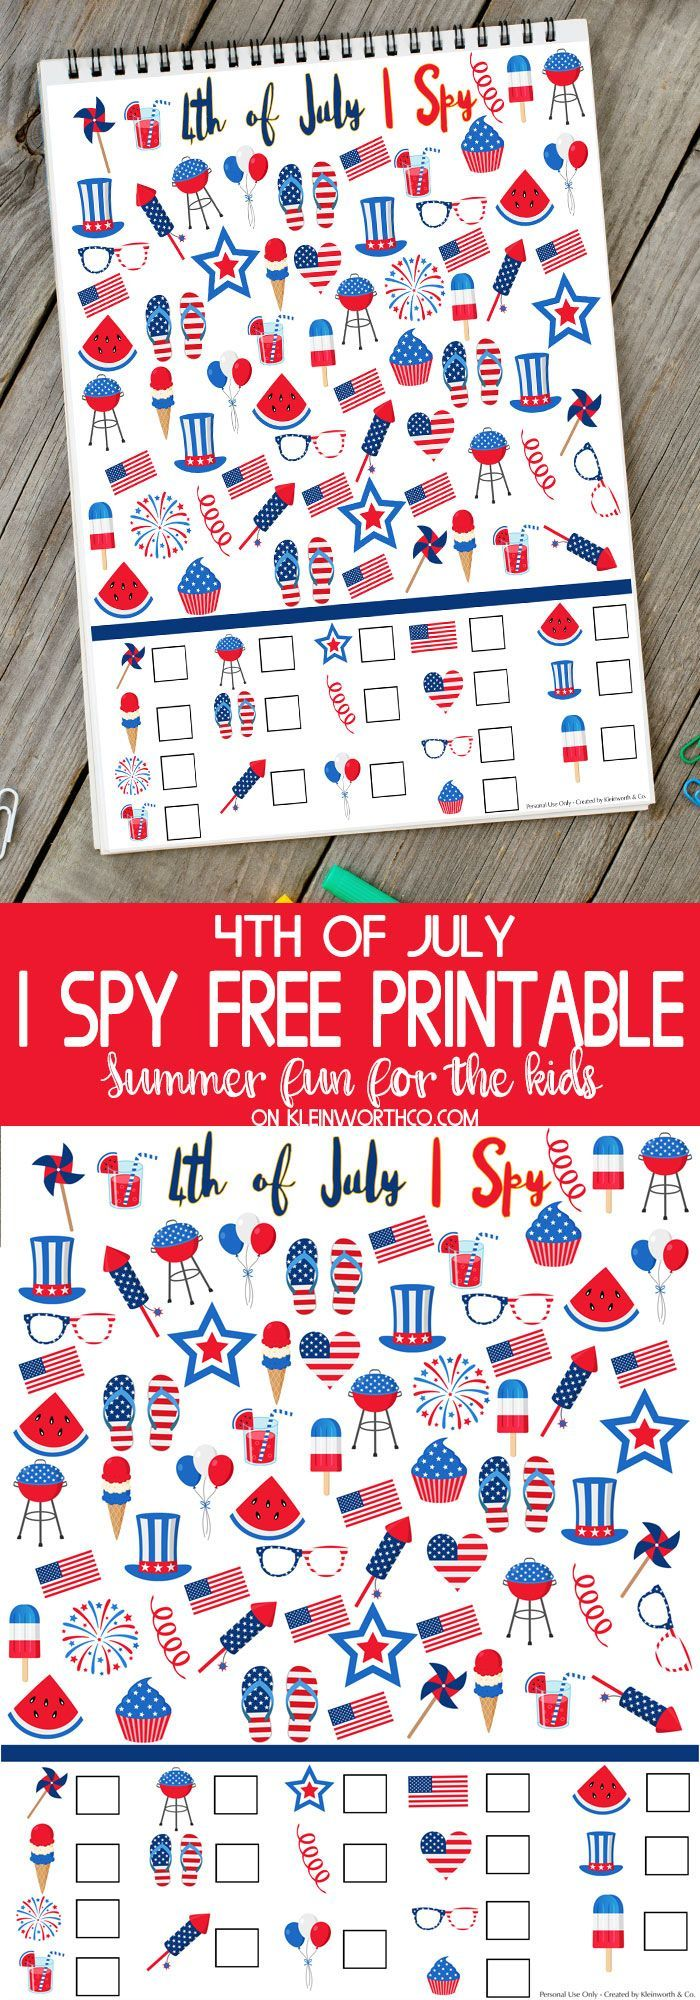 4th Of July I Spy Printable Free Printable To Keep The Kids Busy While They Wait Fourth Of July Crafts For Kids 4th Of July Games Holiday Activities For Kids [ 2000 x 700 Pixel ]